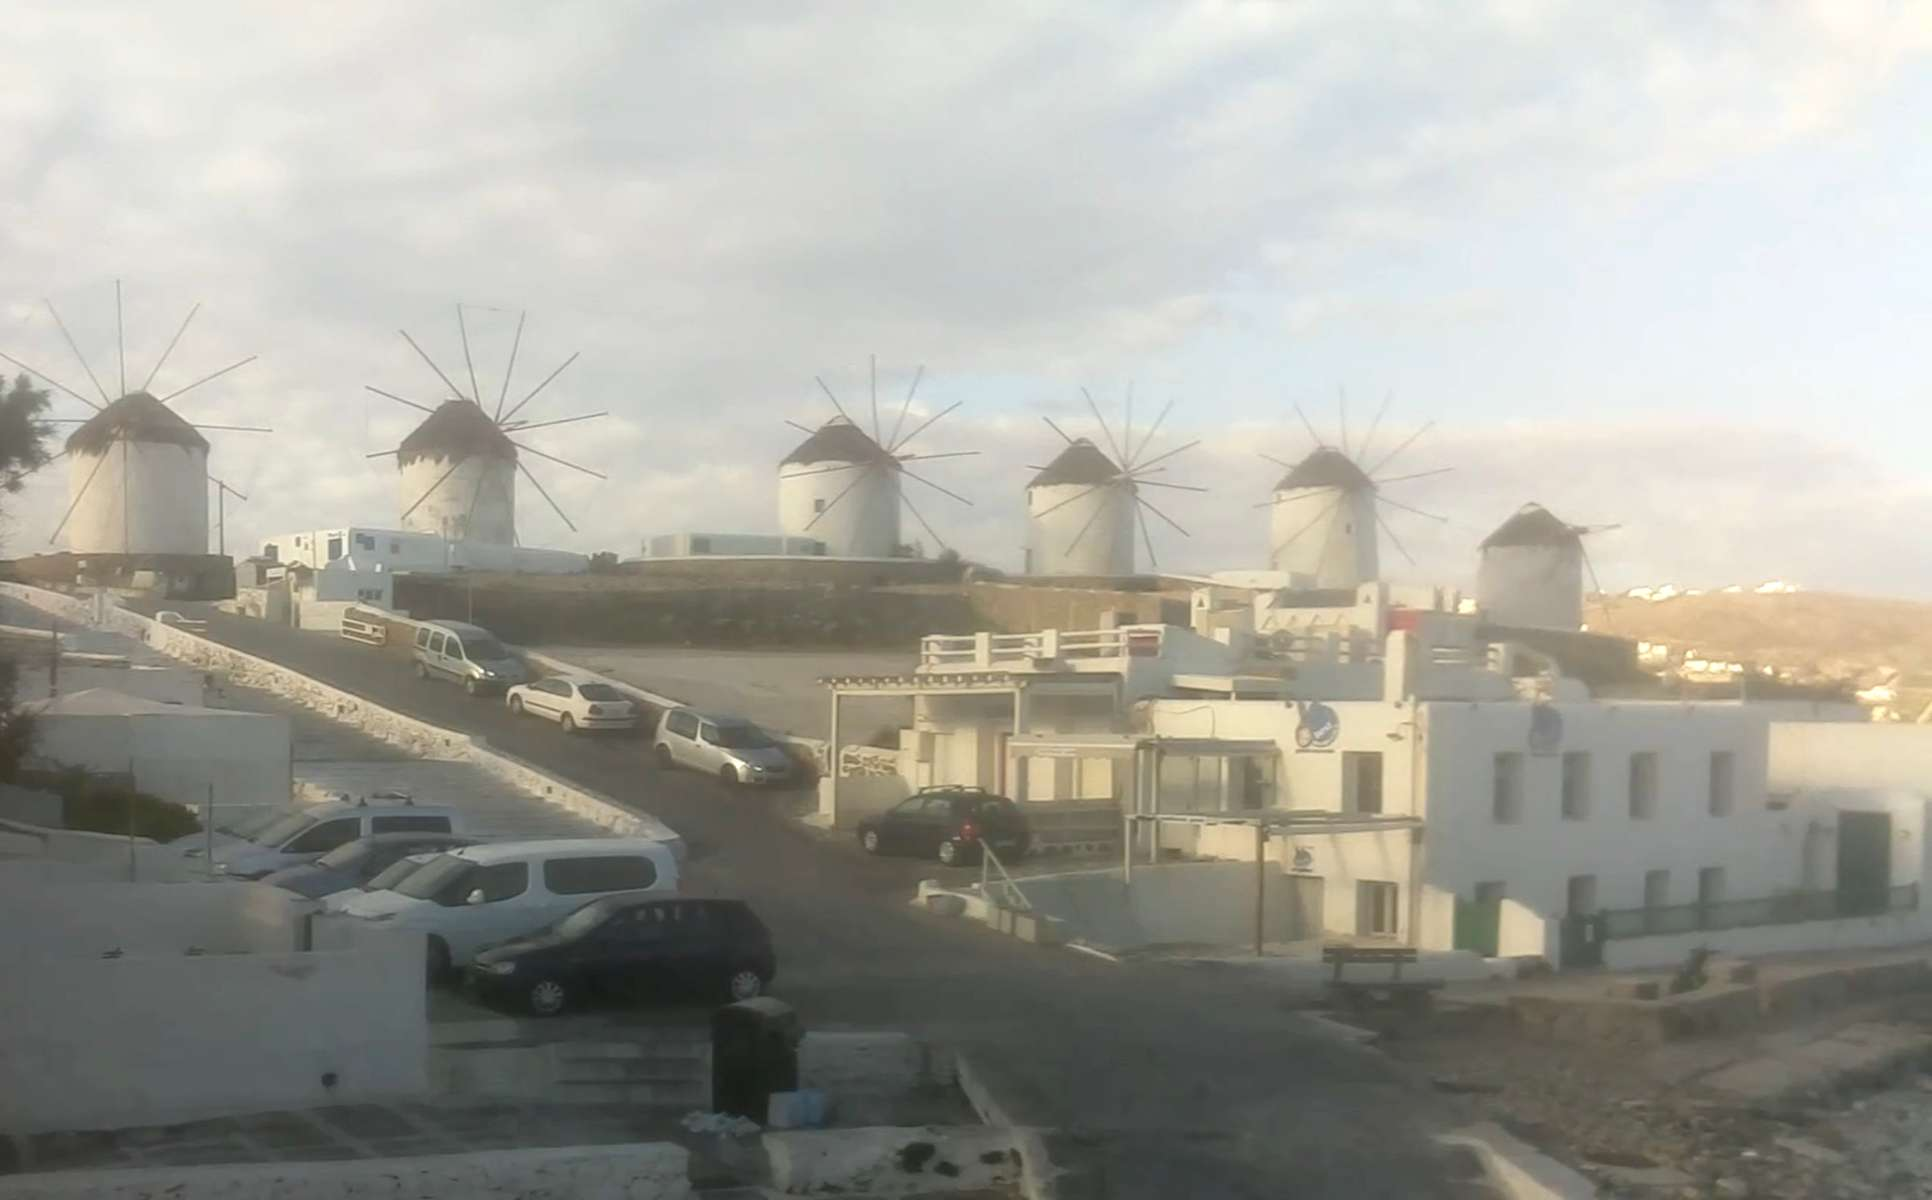 Windmills, Mykonos, Greece. May 2, 2020, 9:59:13 PM PST